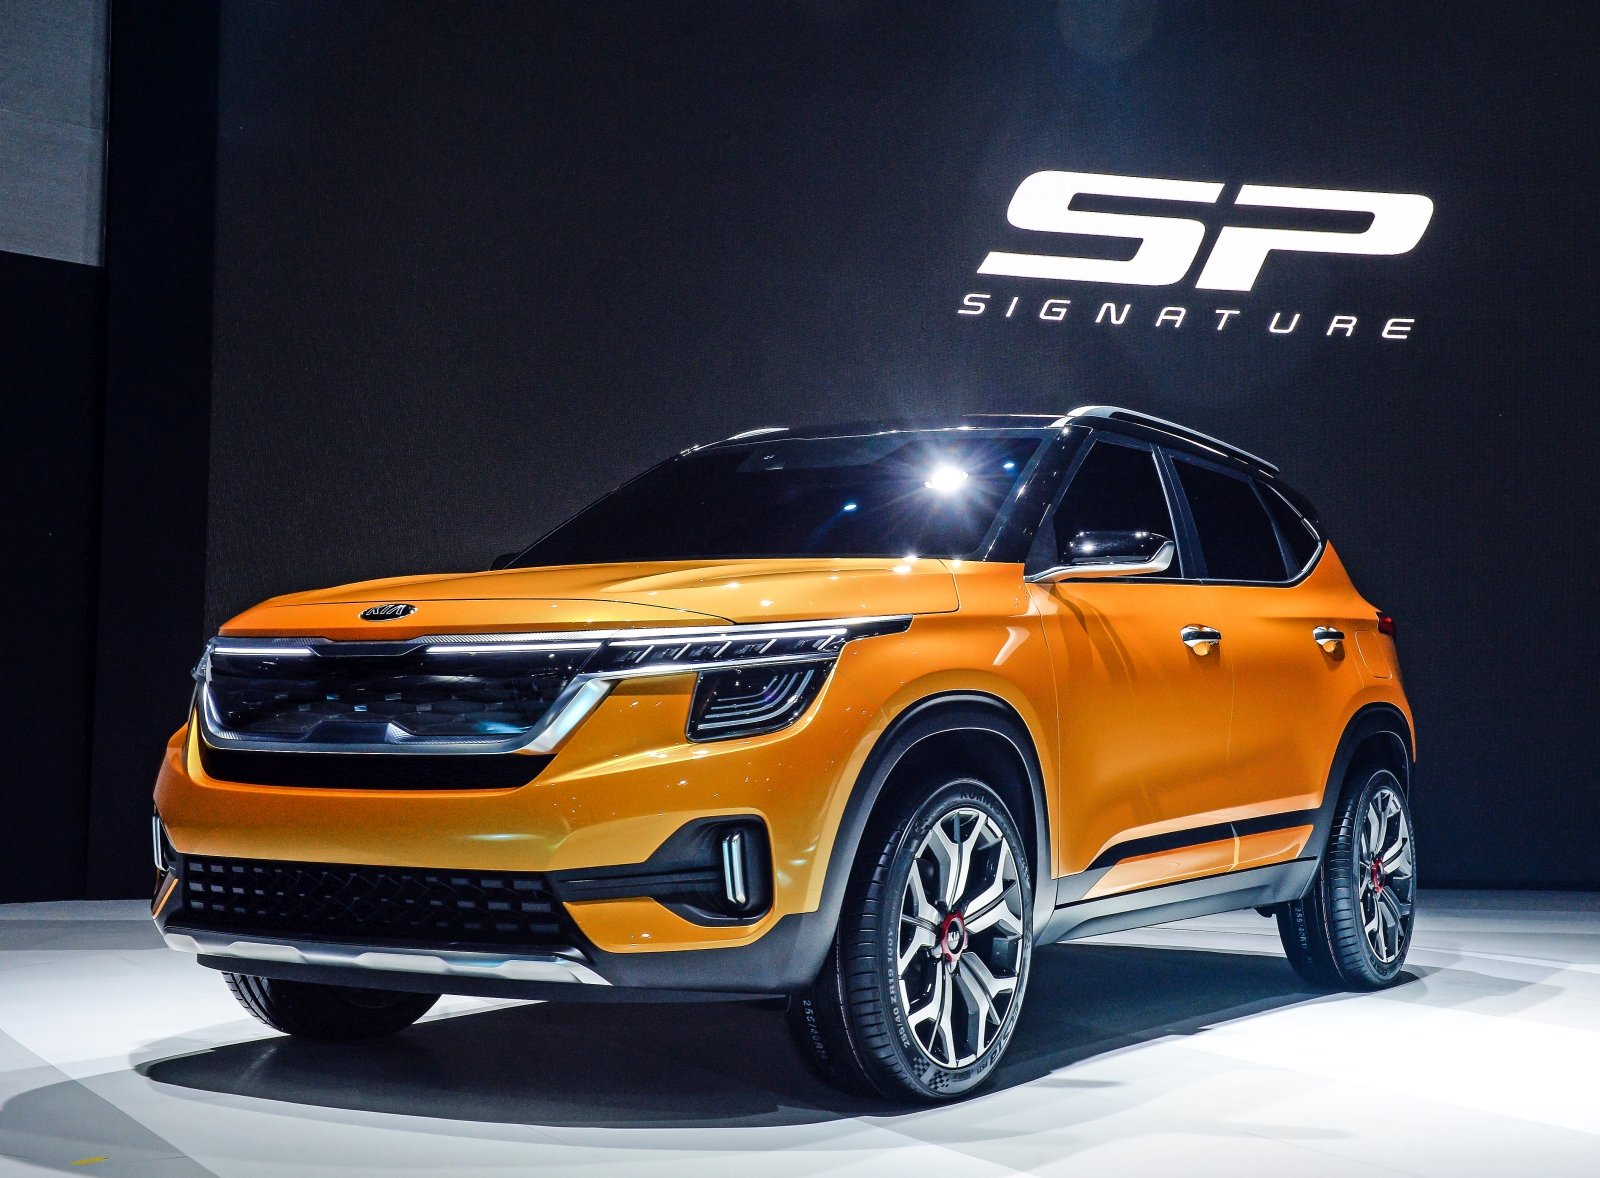 Kia SP Signature Concept